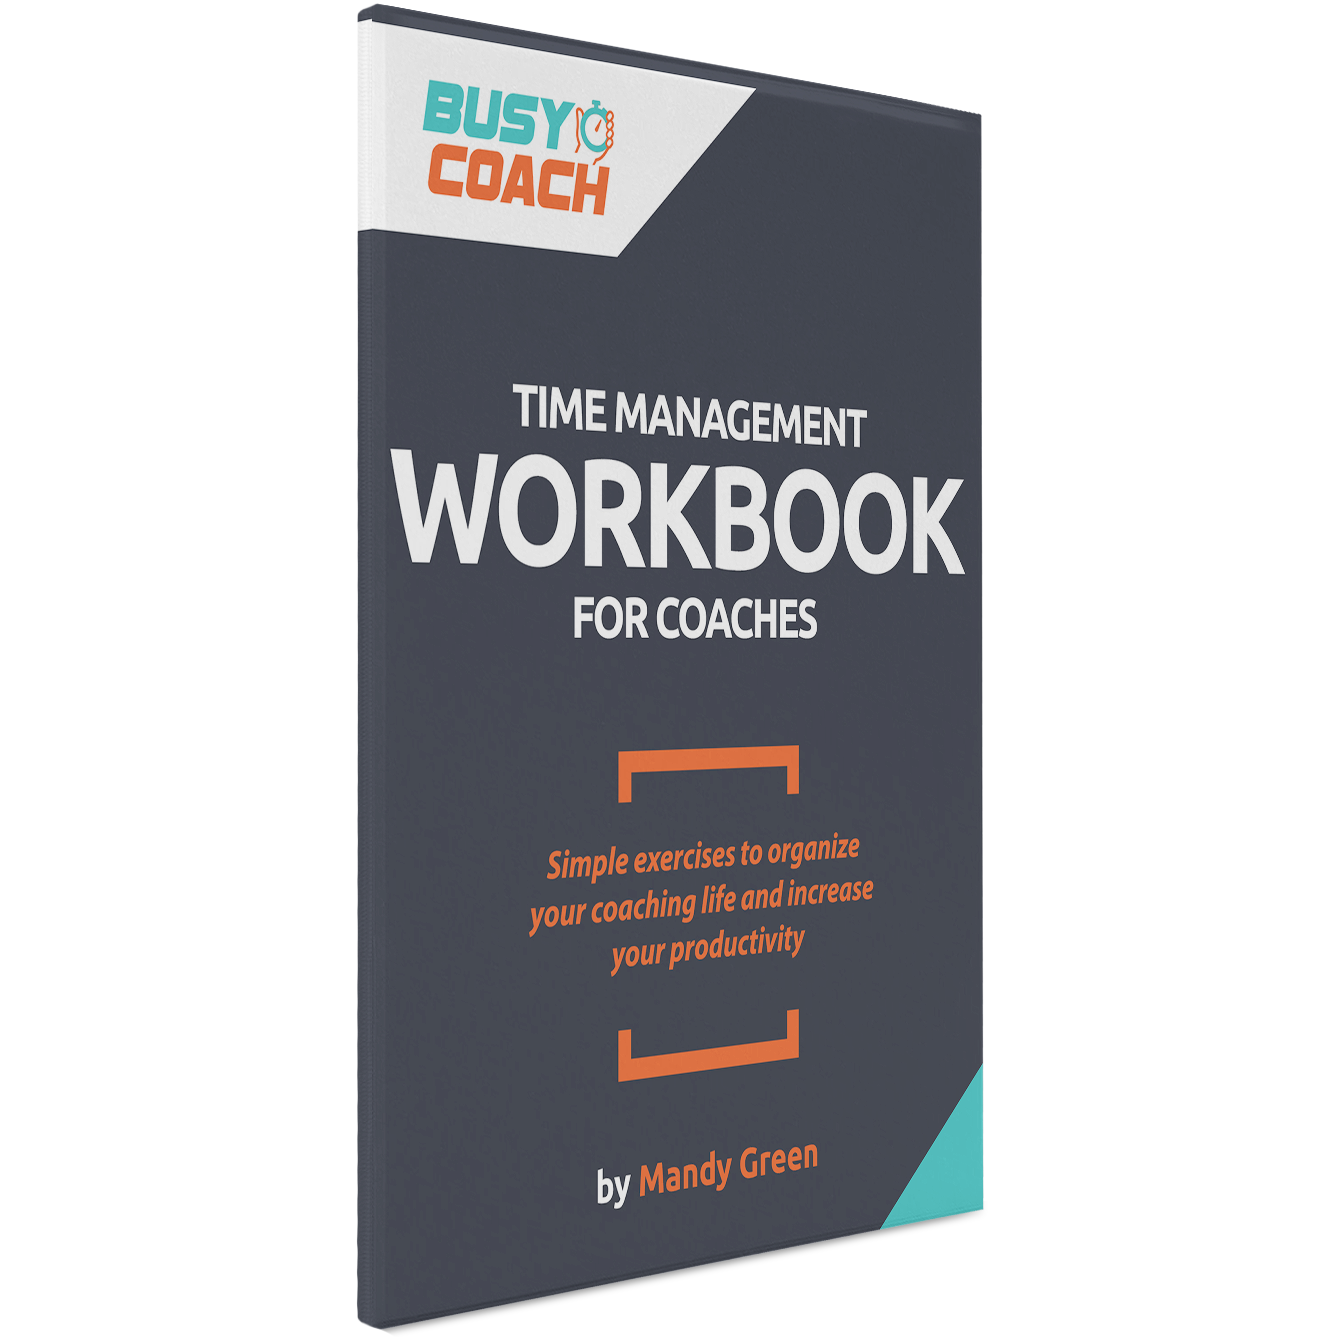 Time Management Workbook for Coaches